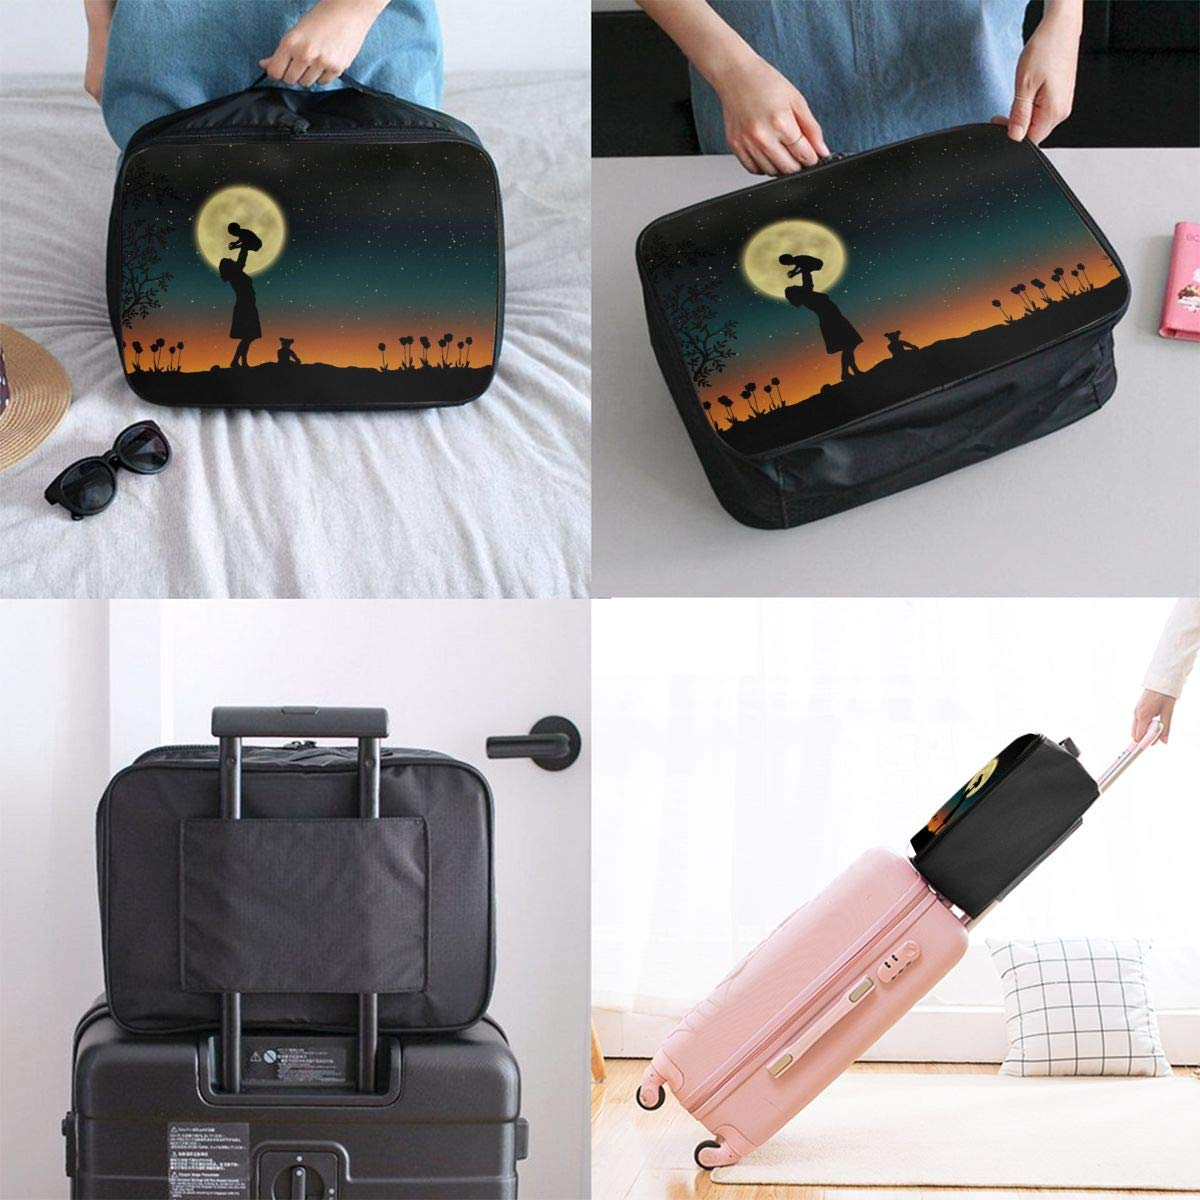 Moon Flower Mother And Son Night Travel Lightweight Waterproof Foldable Storage Carry Luggage Large Capacity Portable Luggage Bag Duffel Bag